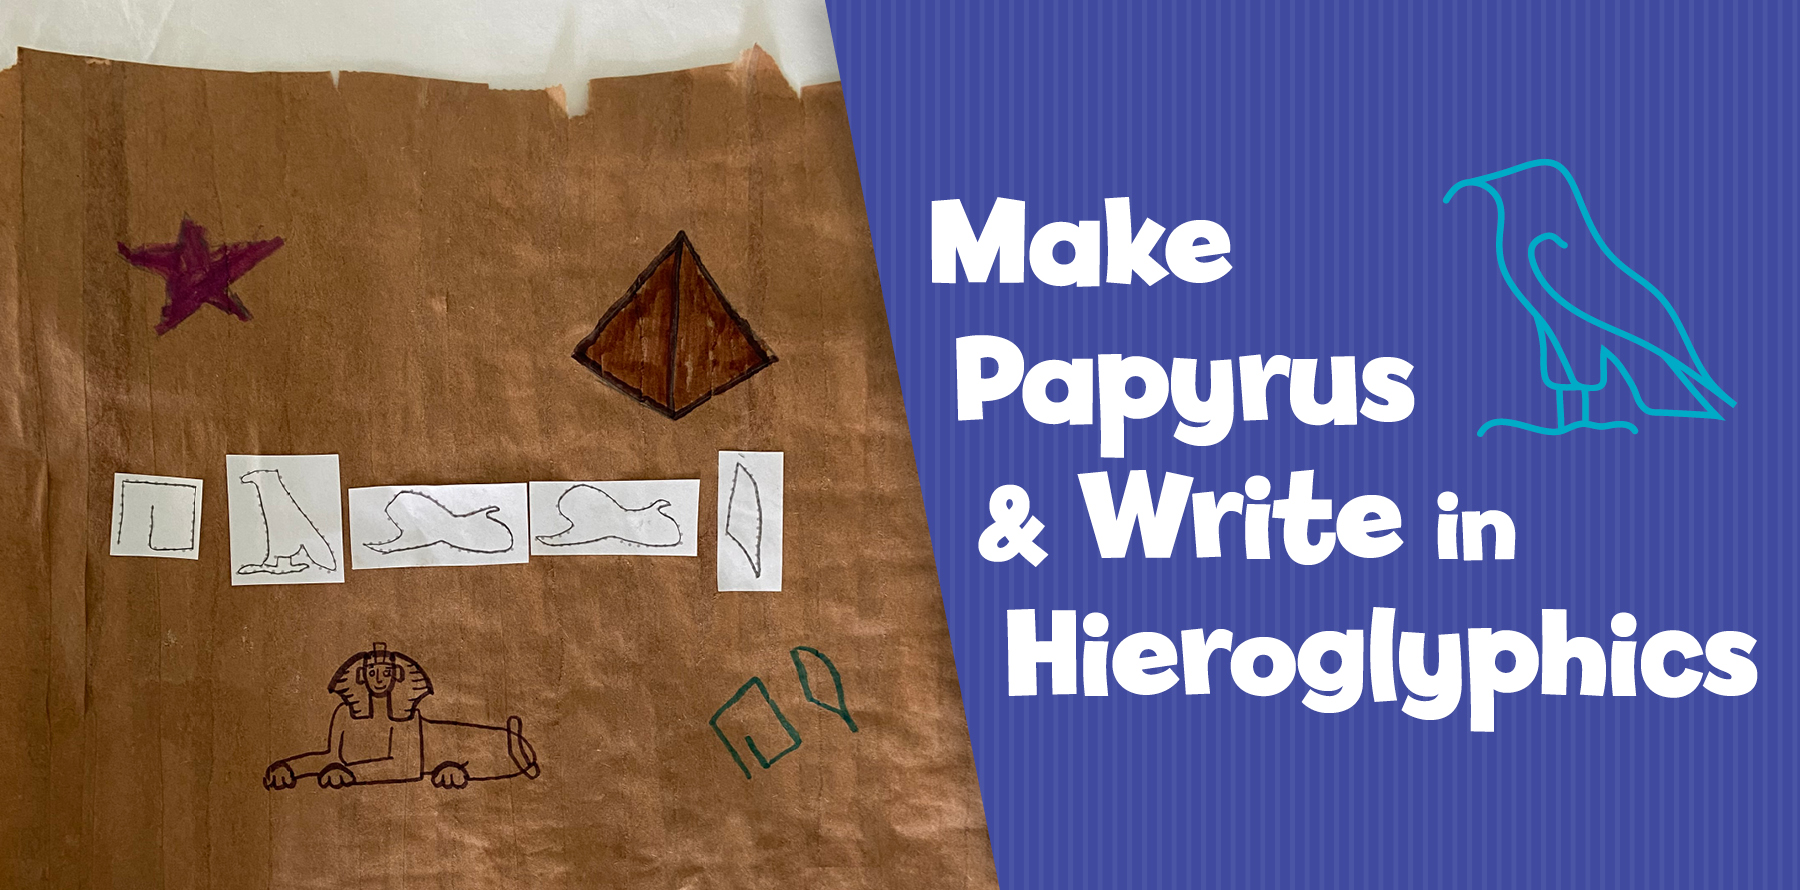 Make Papyrus and Write in Hieroglyphics